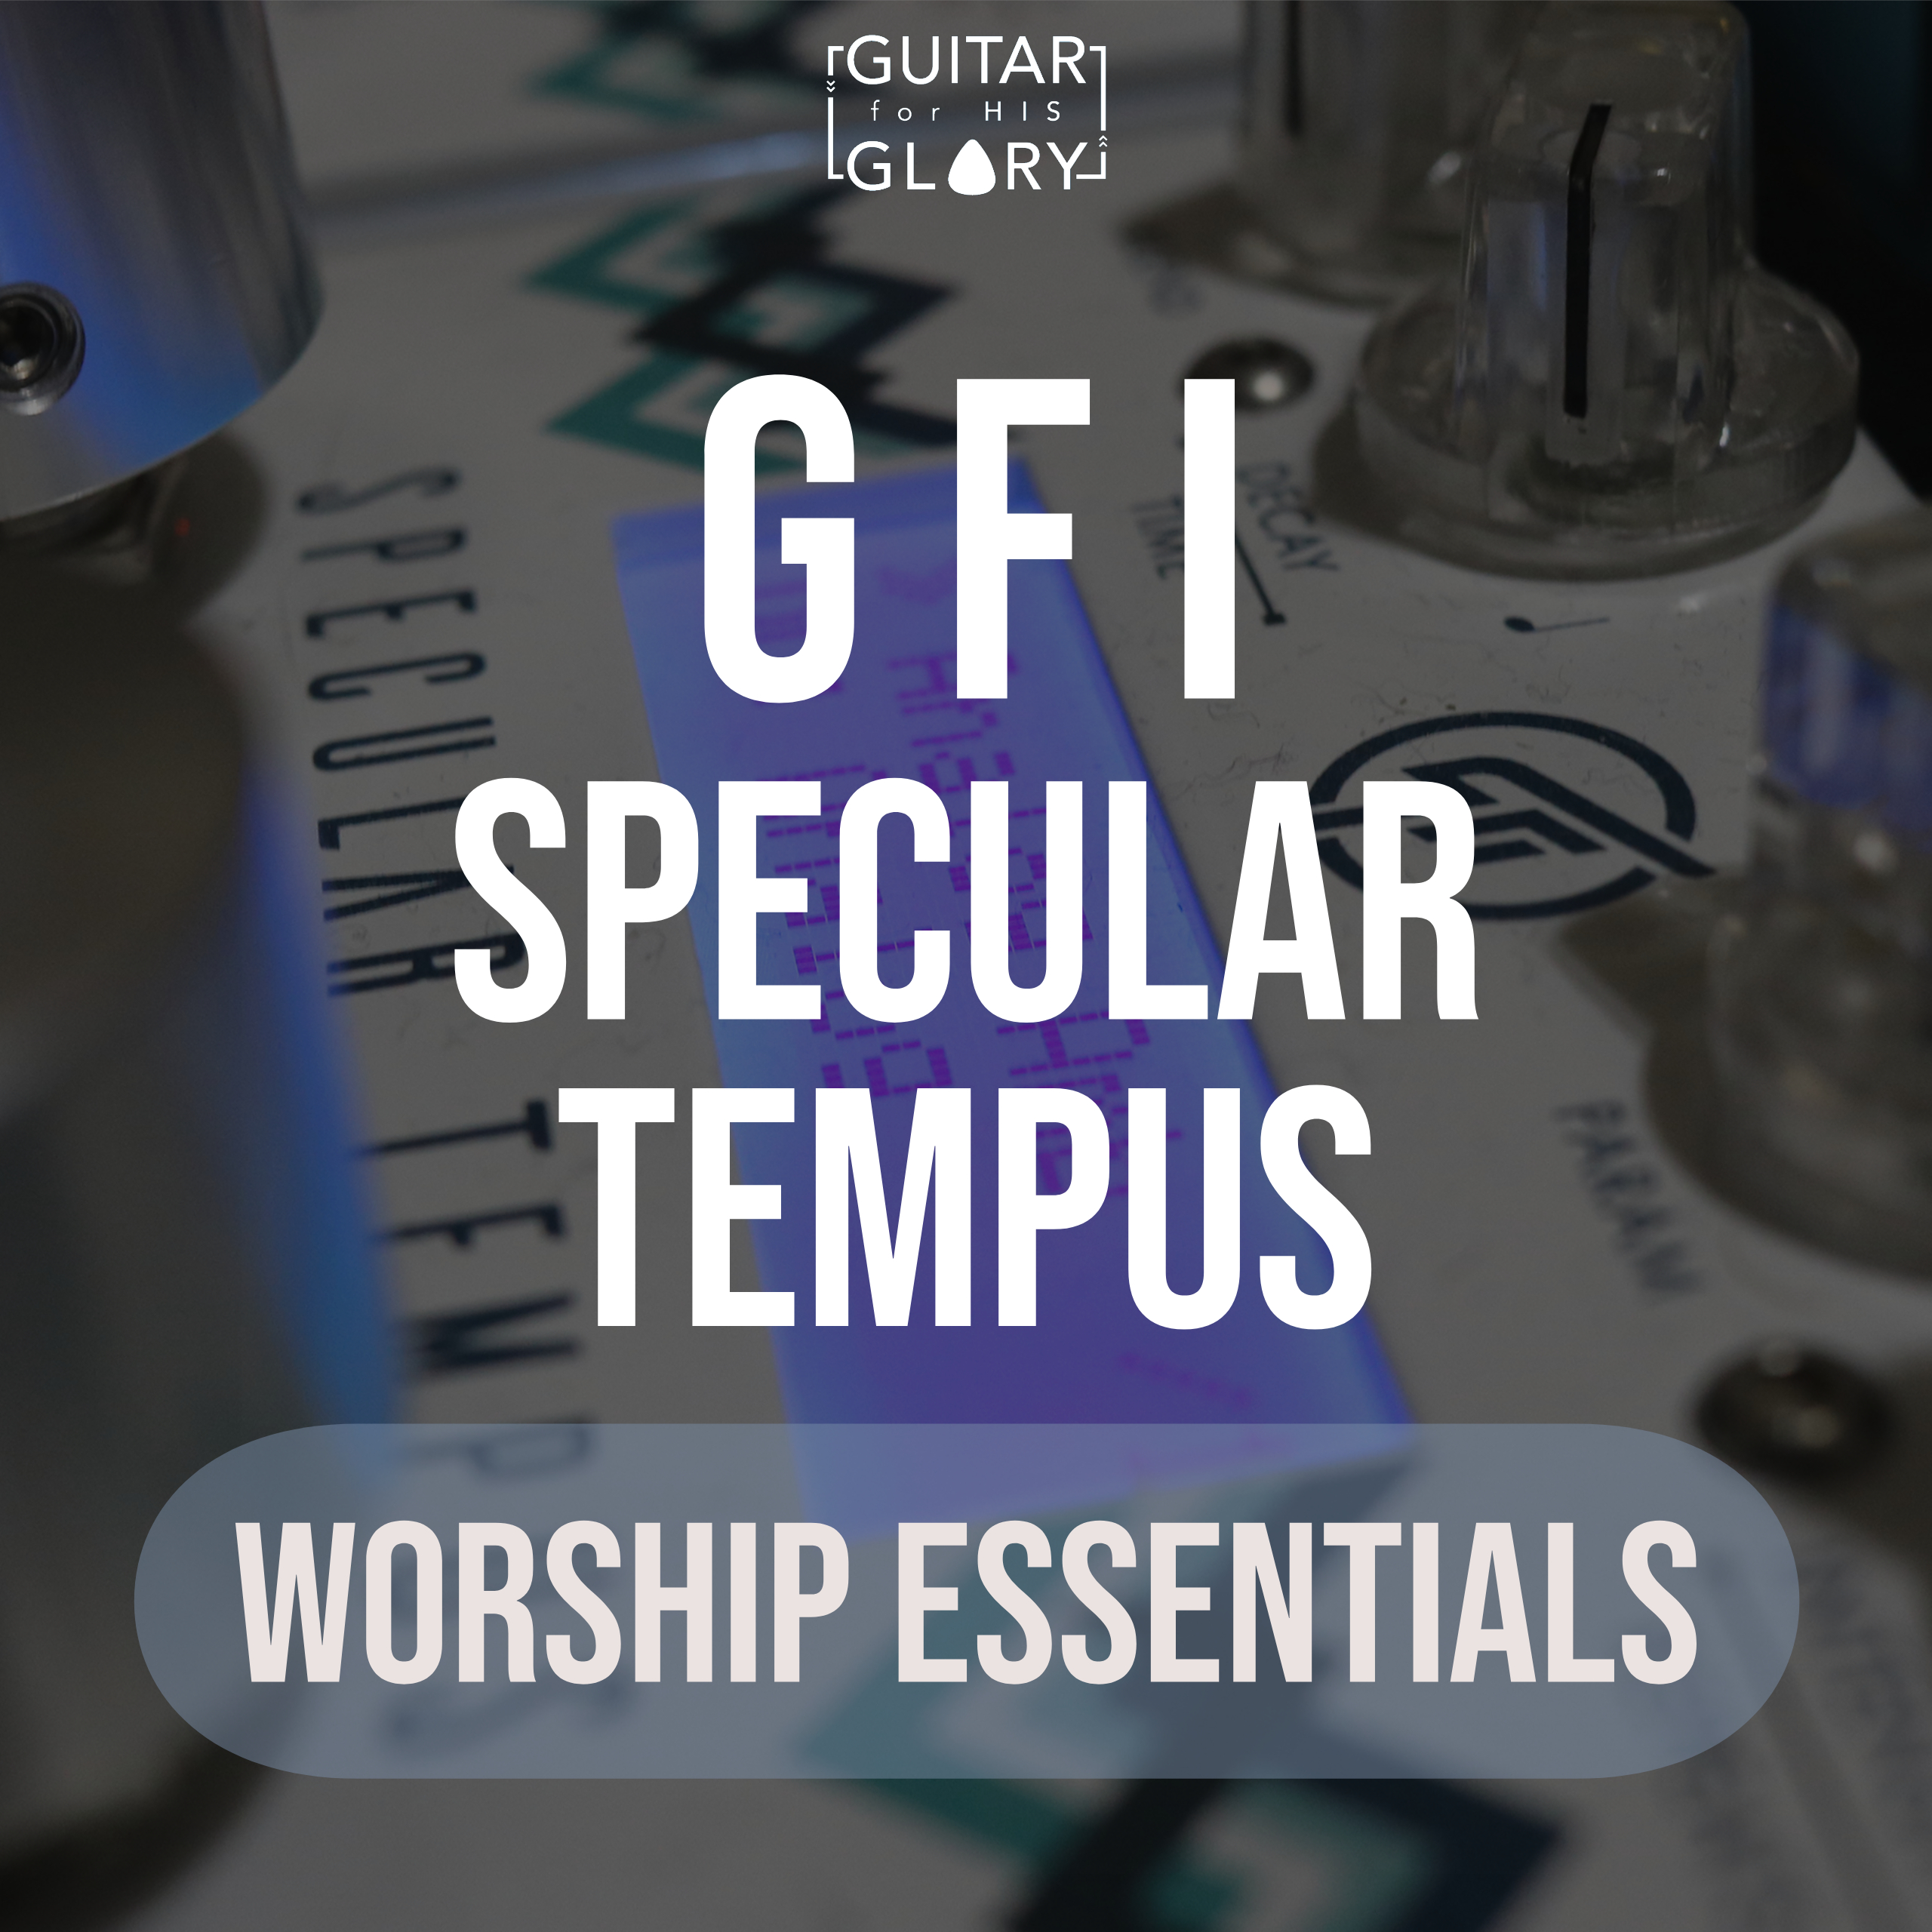 GFI Specular Tempus Worship Essentials (22 presets)